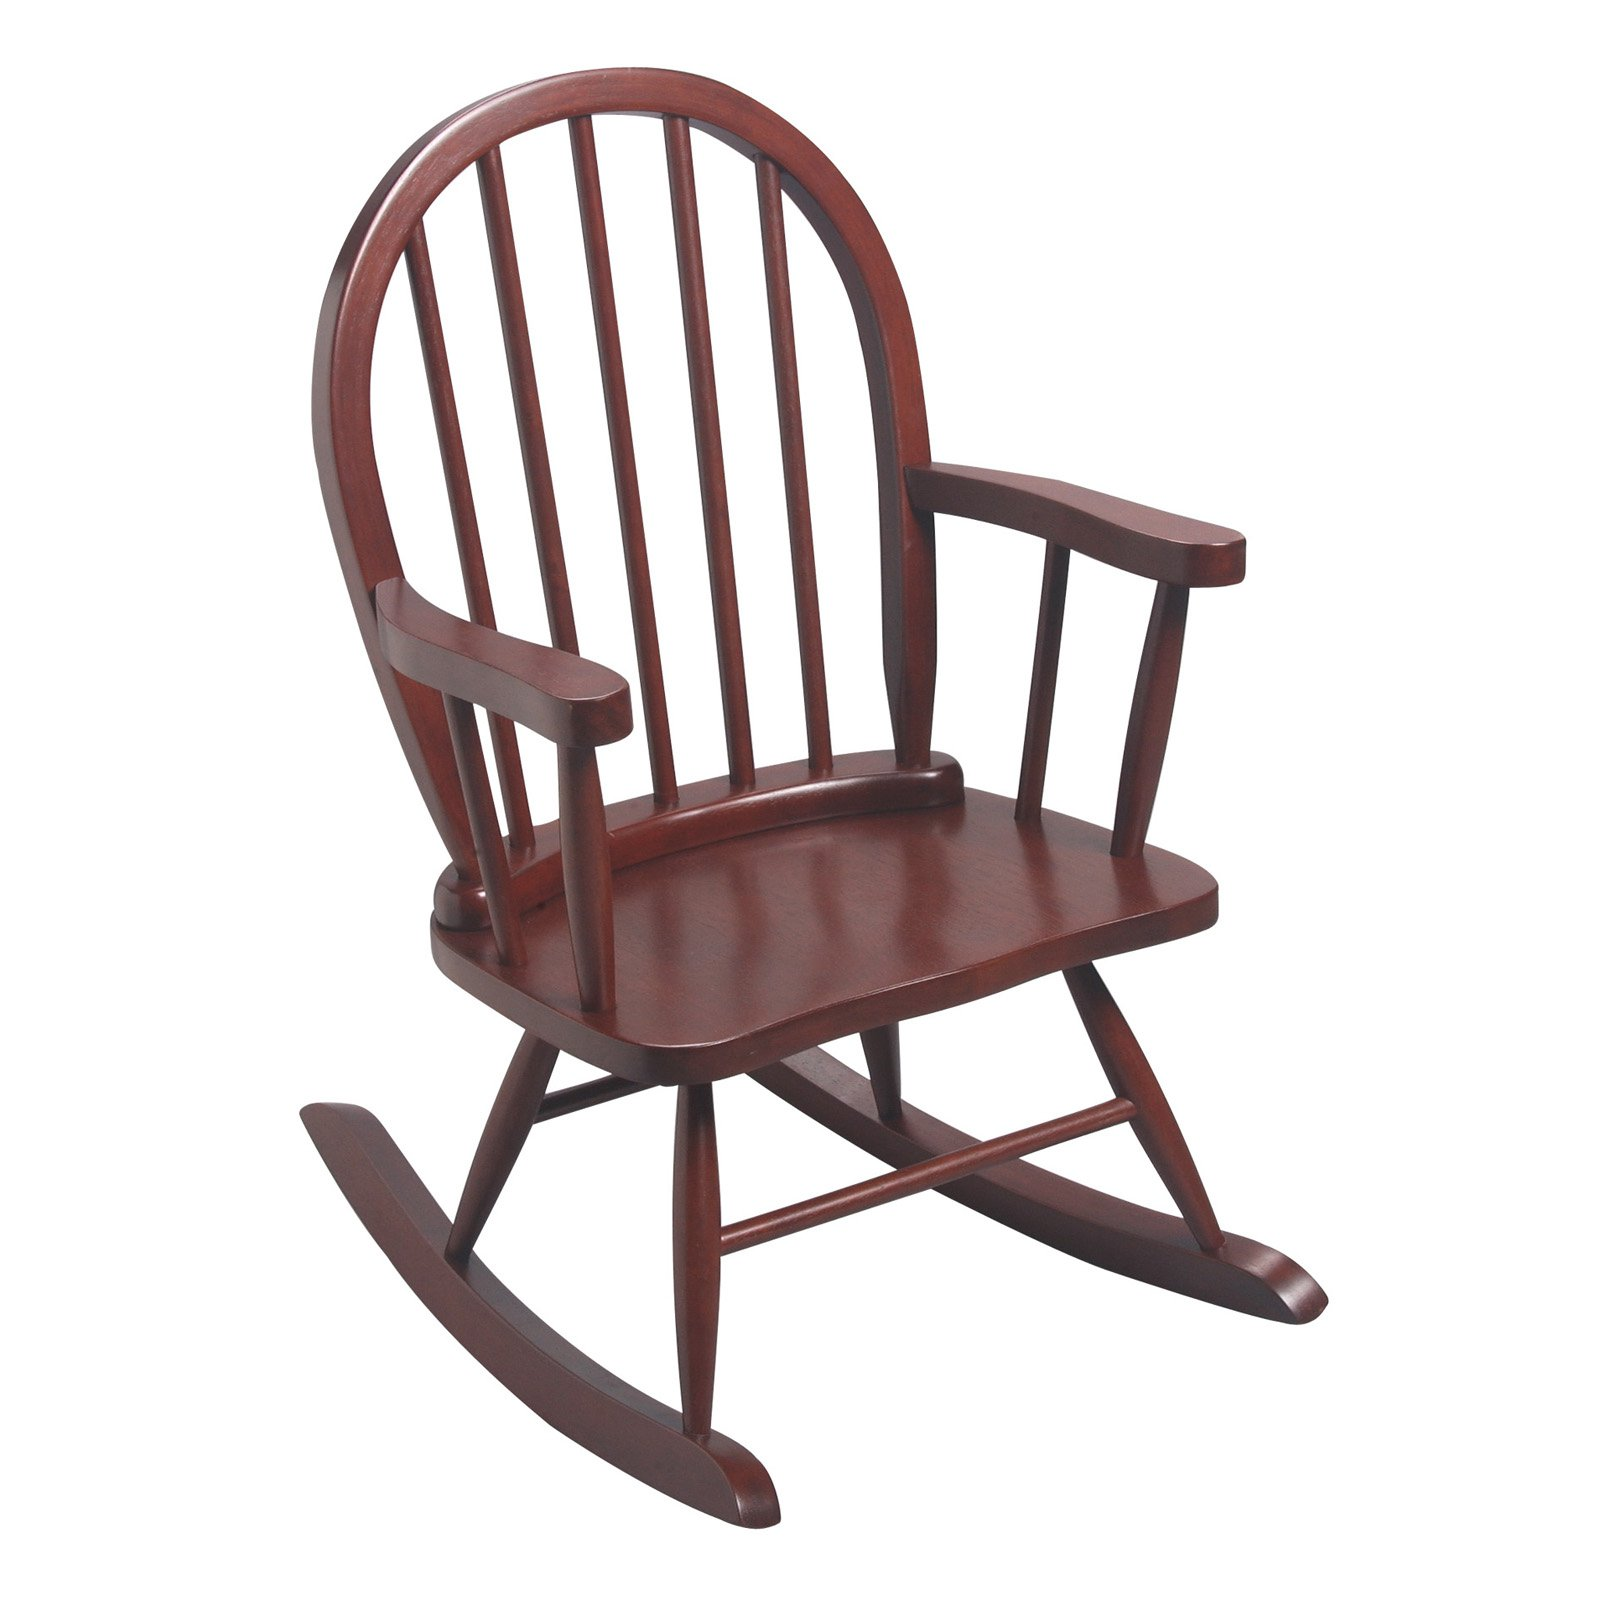 Gift Mark Windsor Childrens 3600 Rocking Chair Cherry Walmart